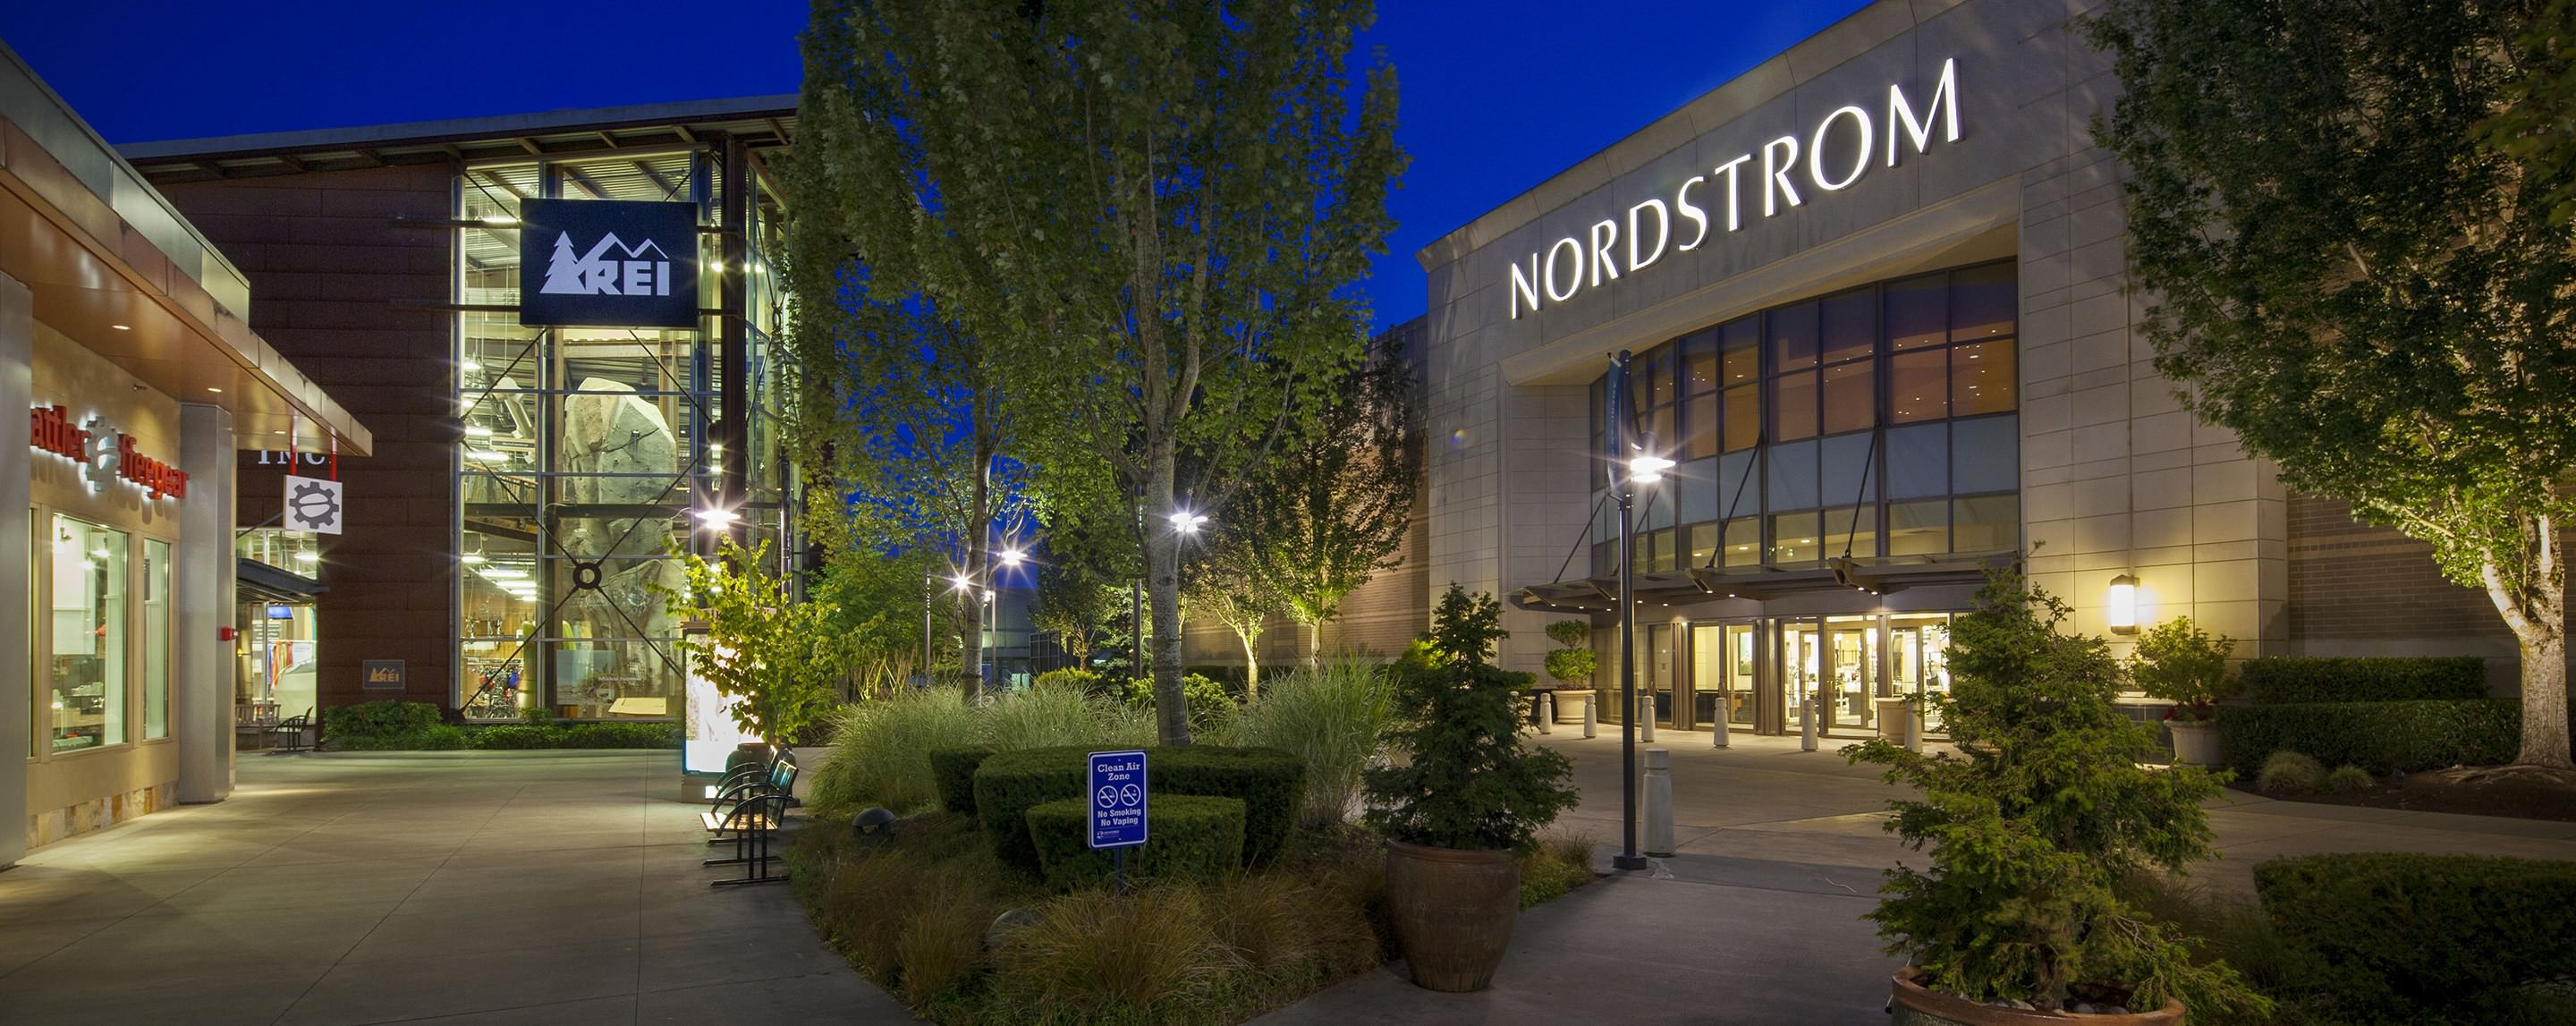 A Nordstrom store stands across from other stores in the middle of an outdoor shopping center.